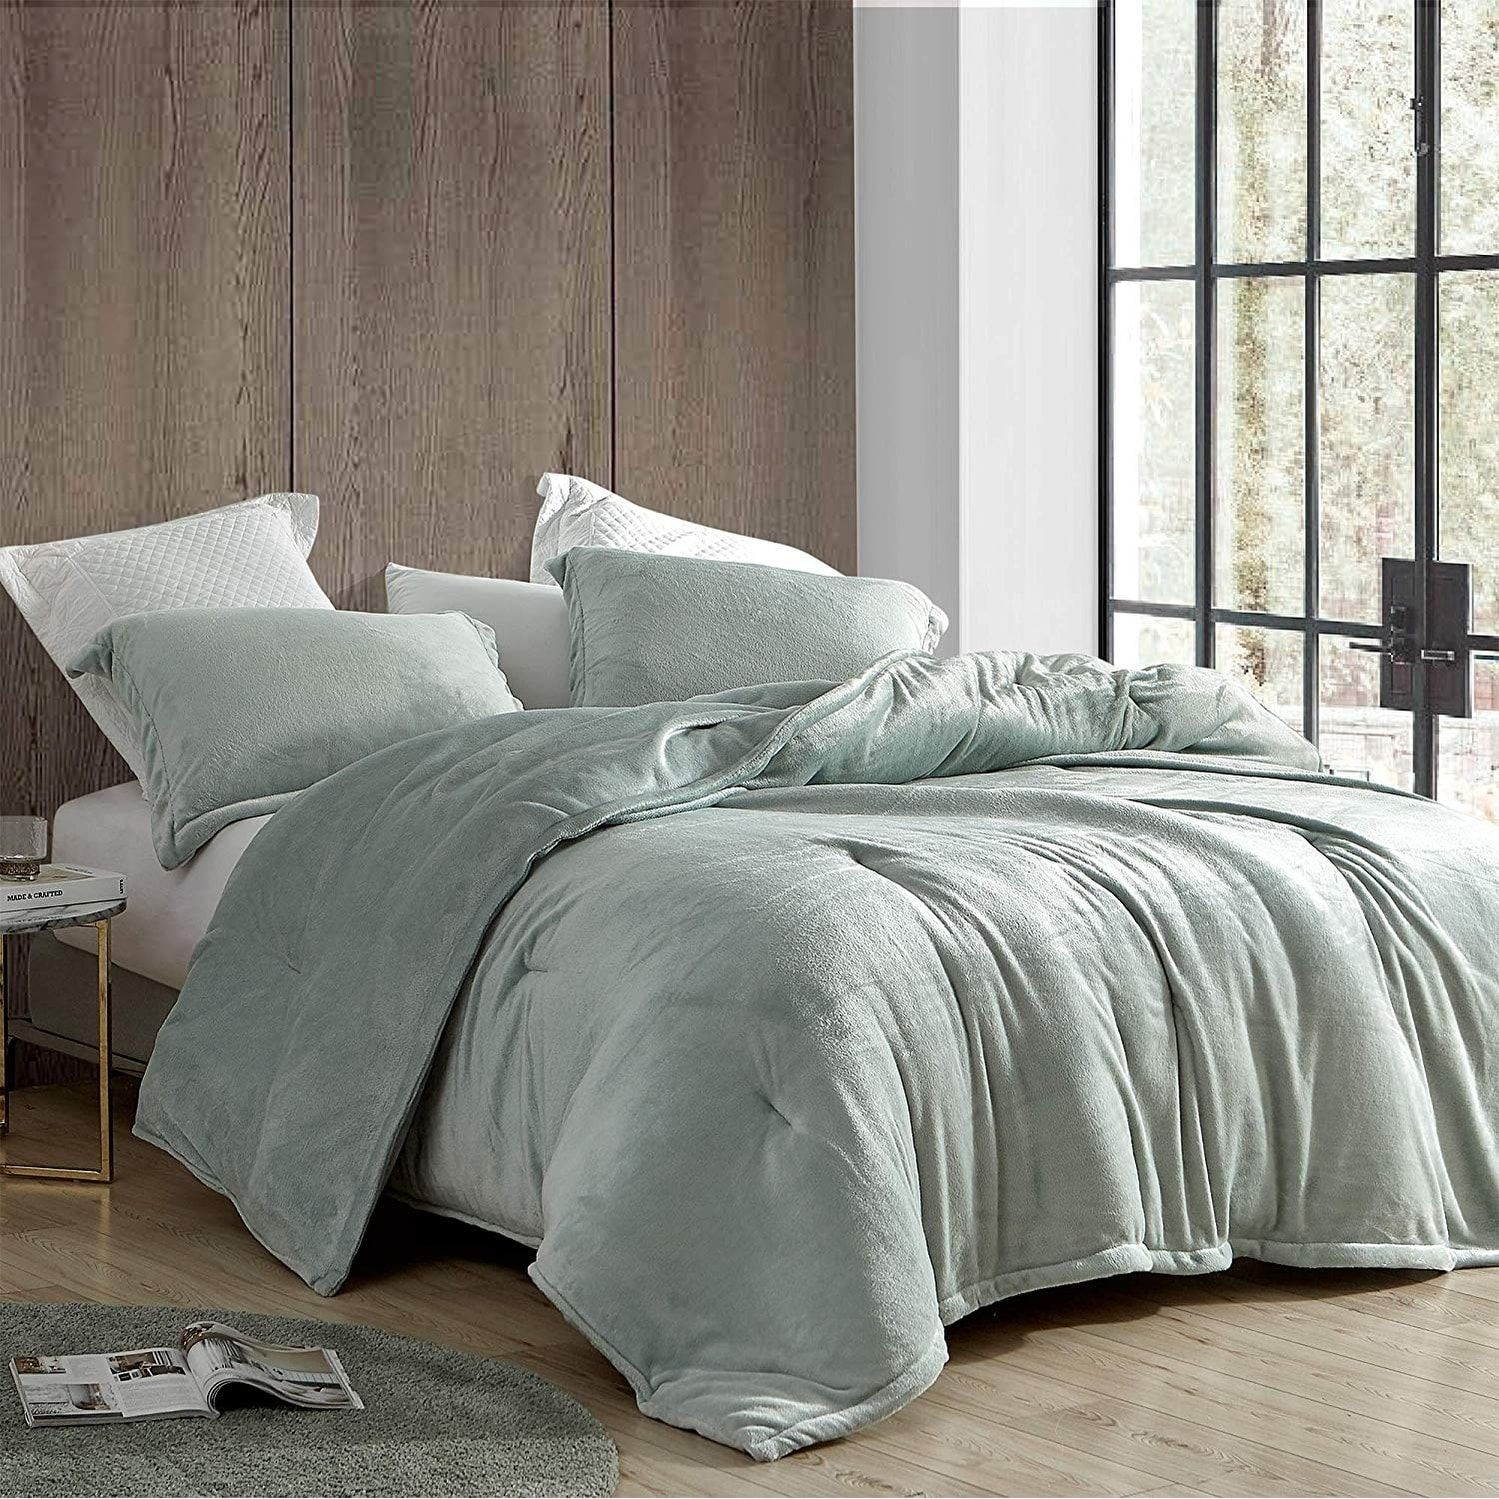 Coma Inducer Comforter Touchy Feely Mineral Gray